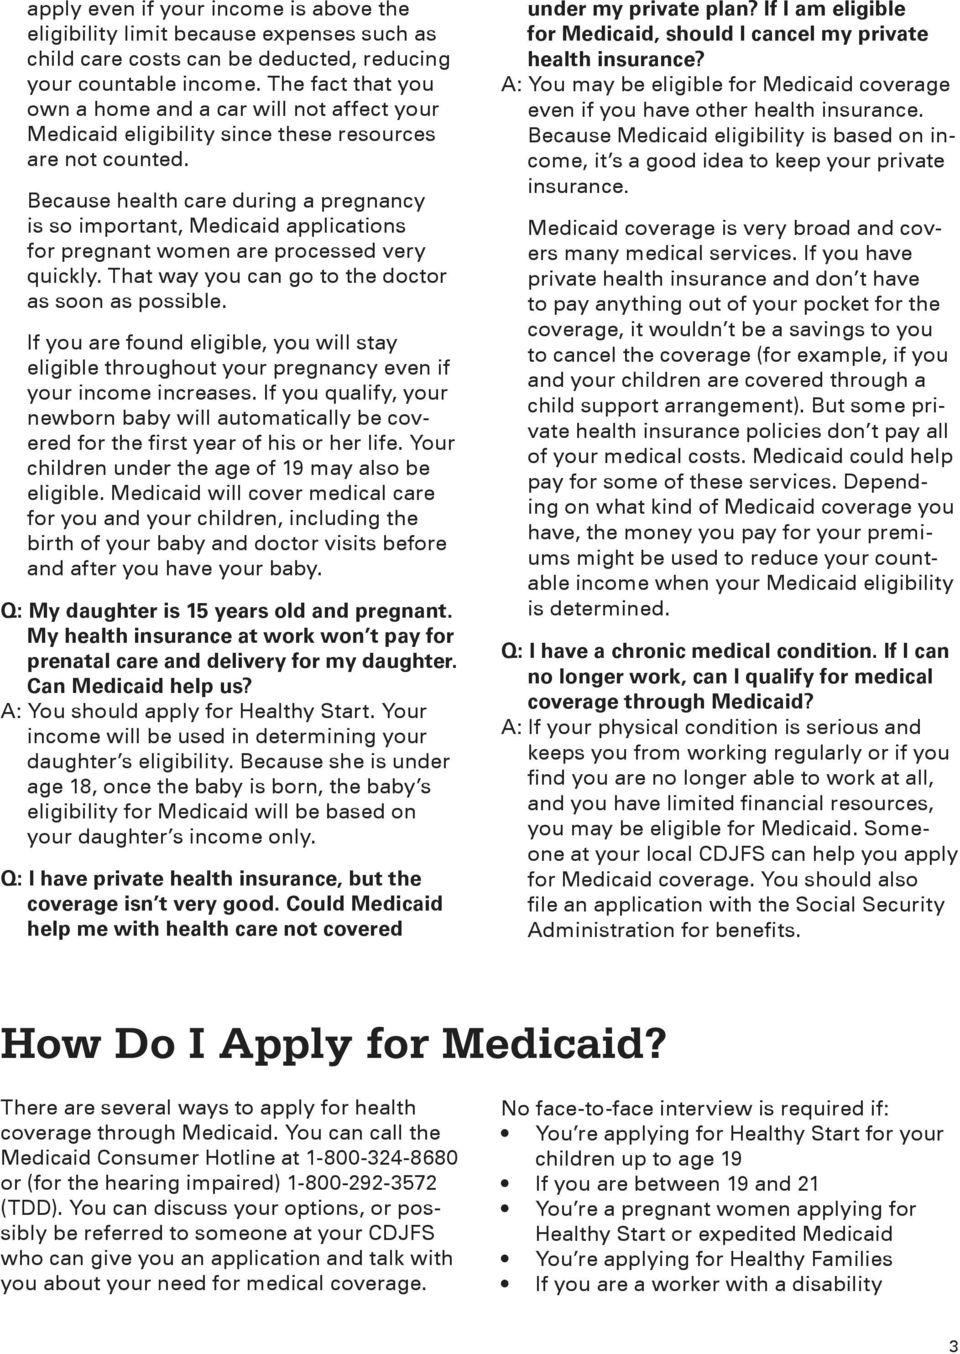 Because health care during a pregnancy is so important, Medicaid applications for pregnant women are processed very quickly. That way you can go to the doctor as soon as possible.